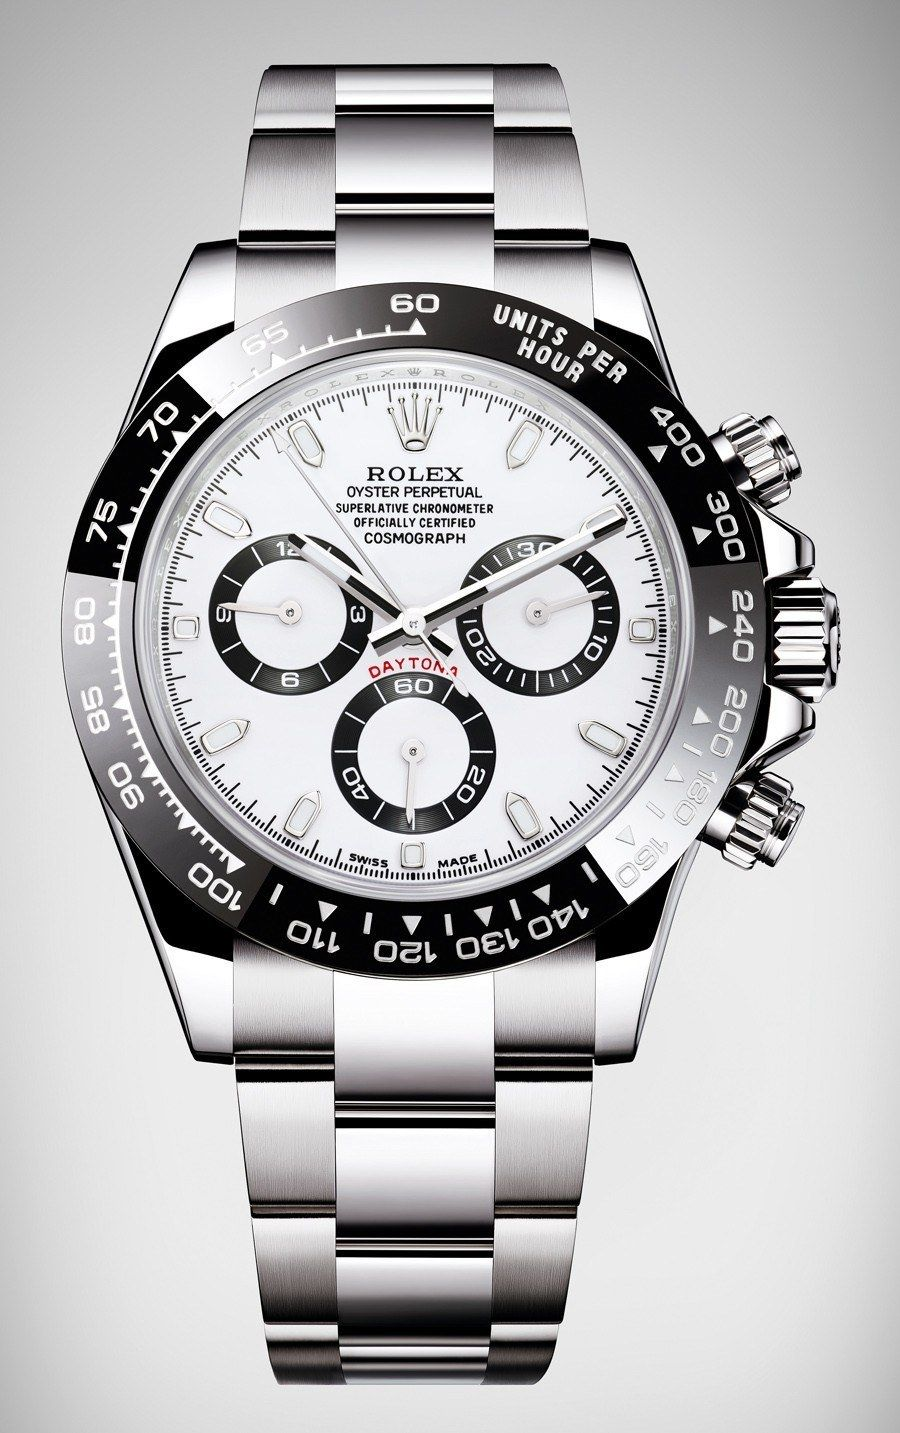 Rolex: Oyster Perpetual Cosmograph Daytona #rolexwatches